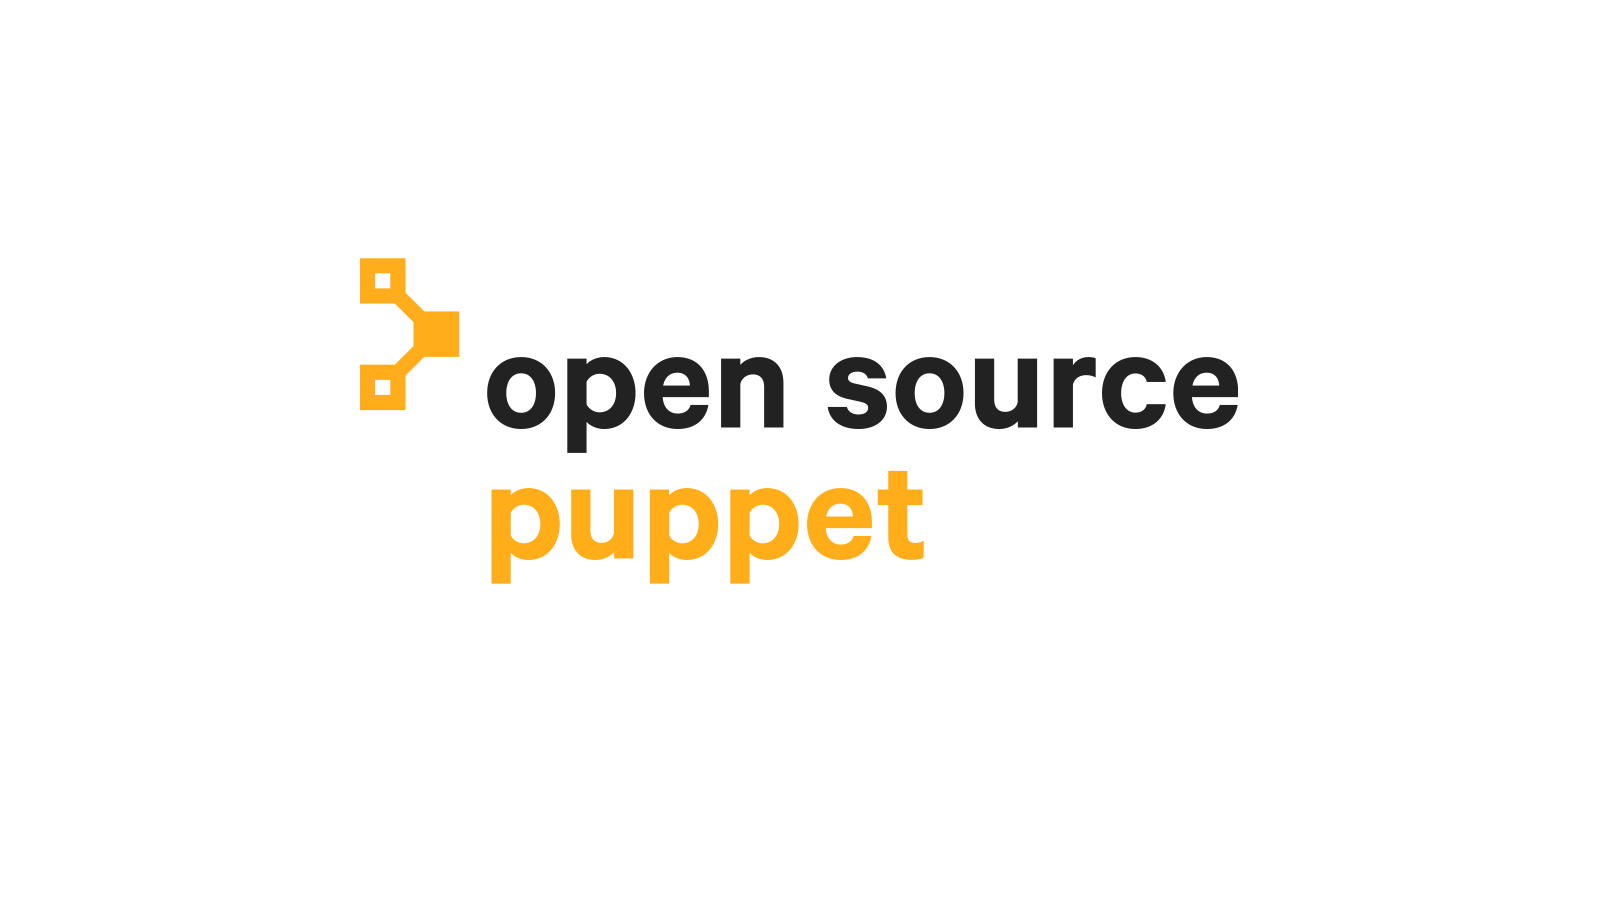 P open source